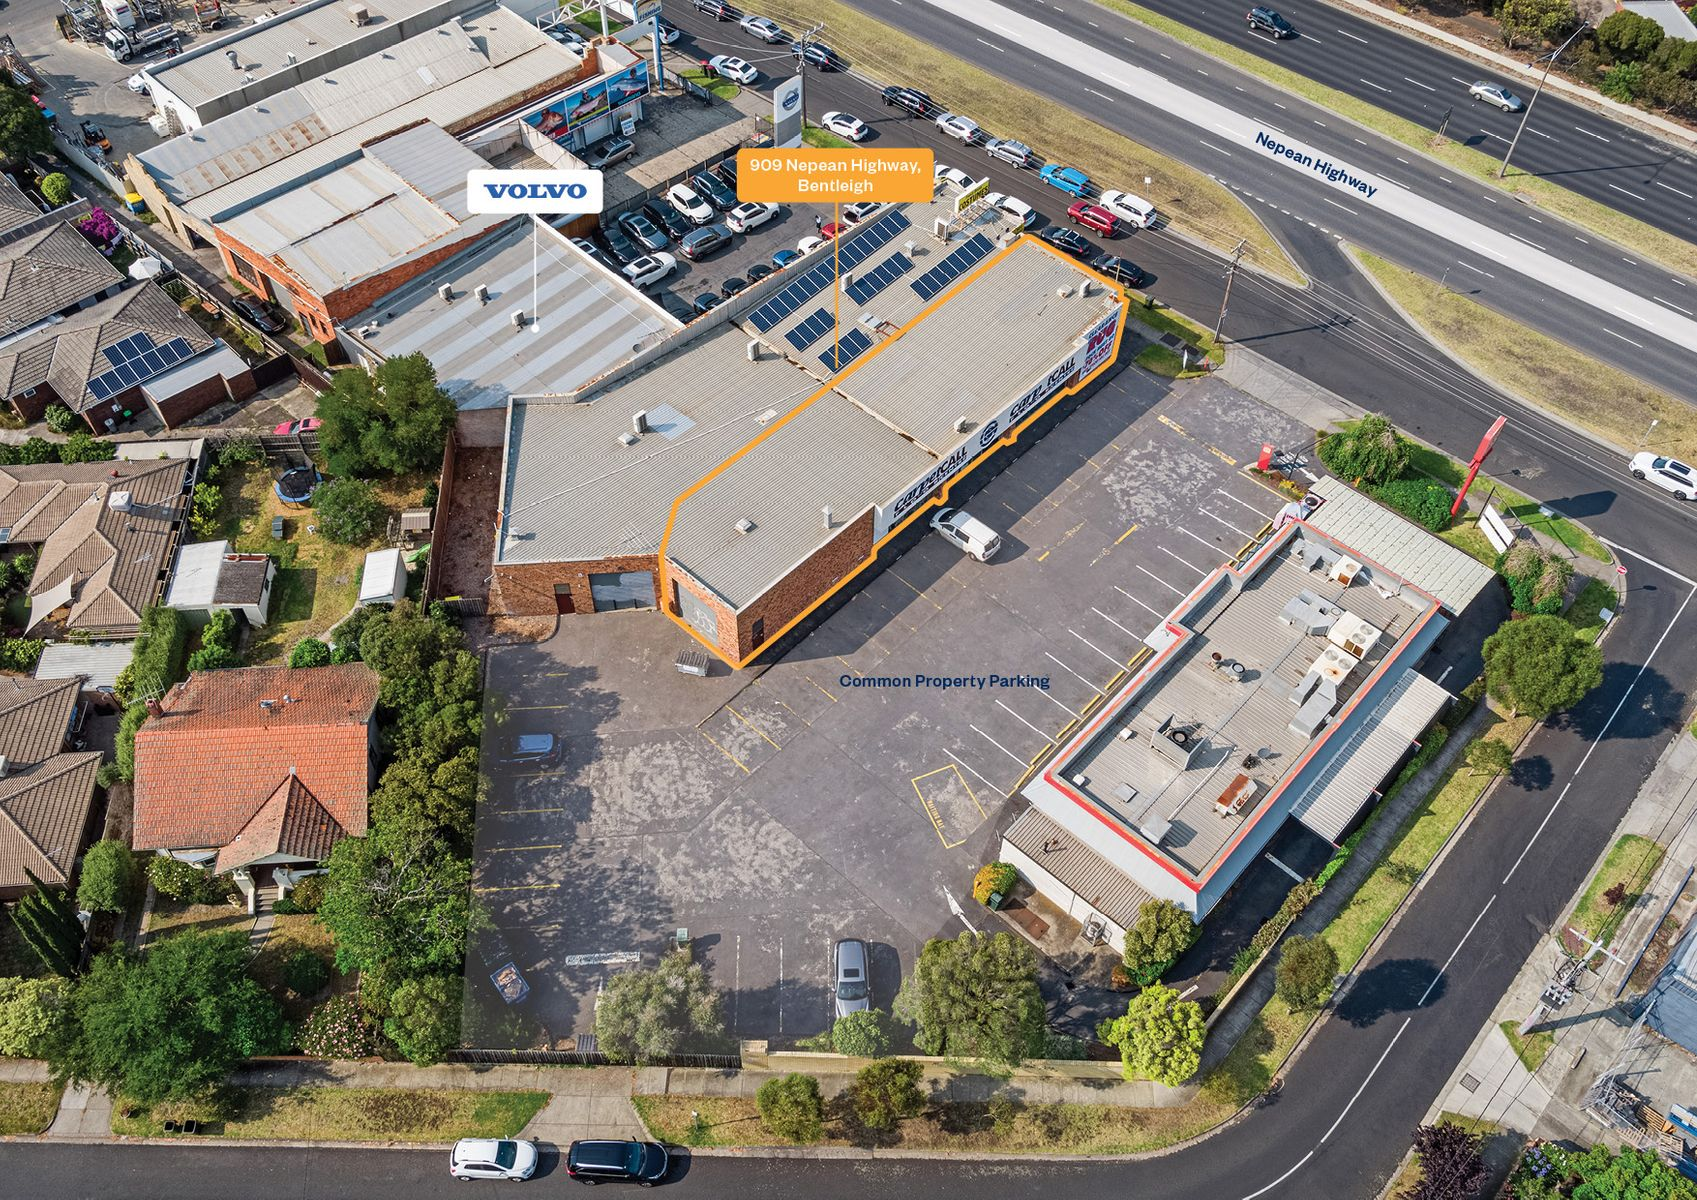 TC0143 909 Nepean Highway, Bentleigh MarkUp 0027 V2